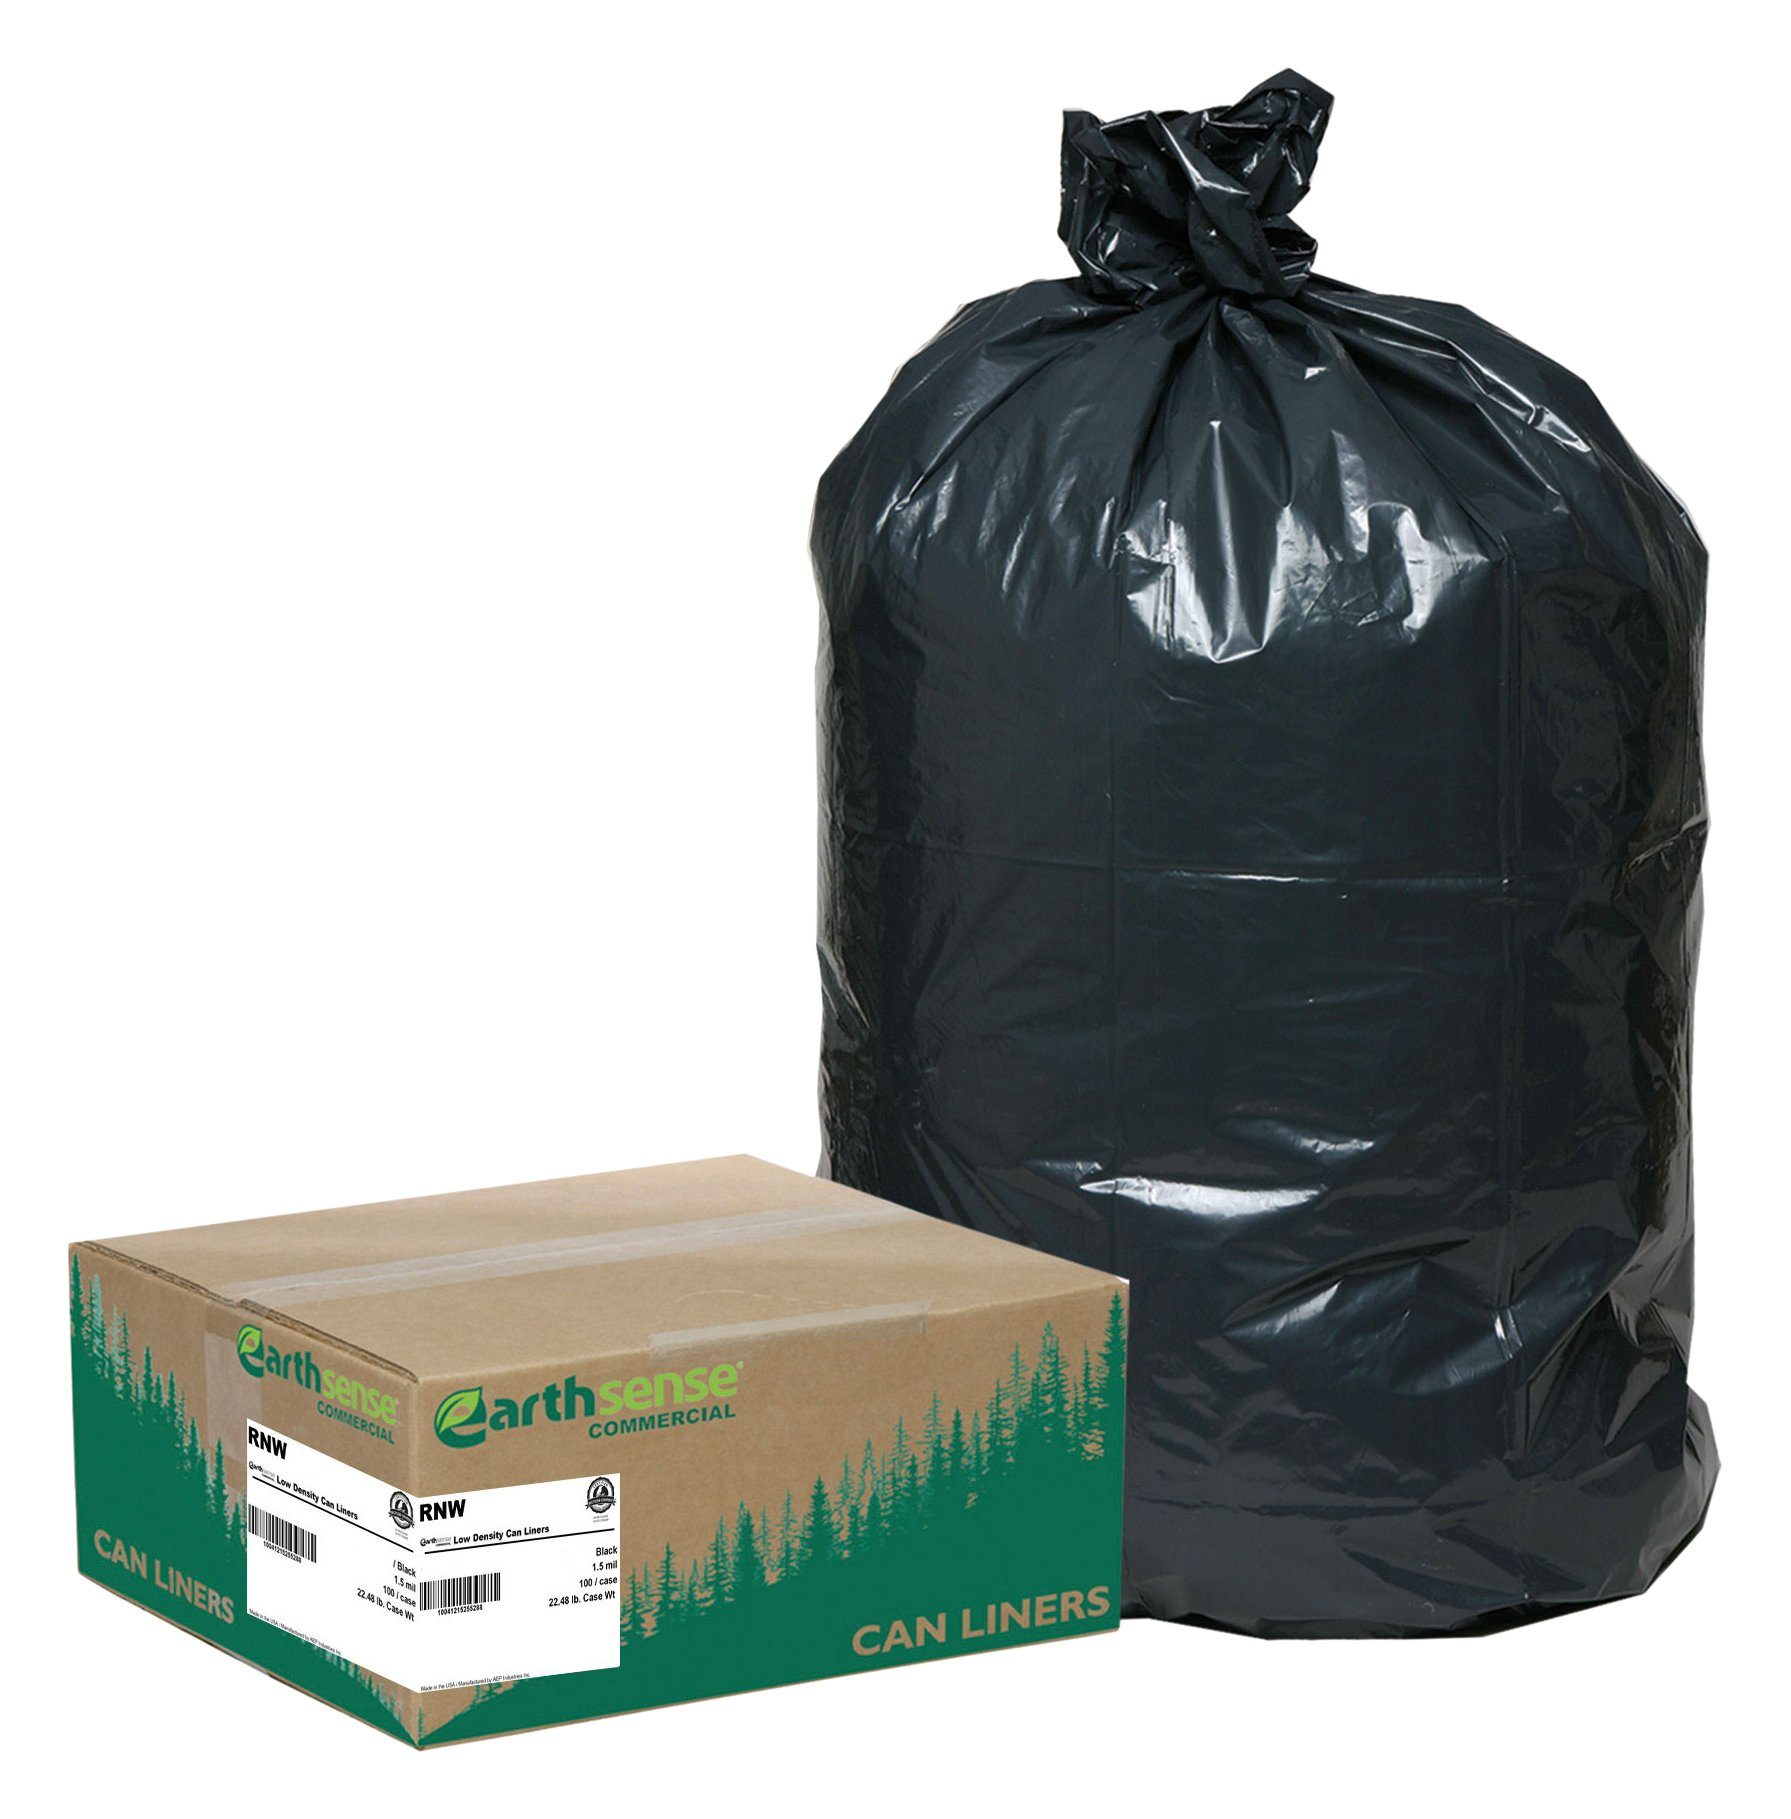 Earthsense Commercial RNW4760 Can Liner, 43 x 47, 56 gal Glutton, 1.65 mil, Black (Pack of 100)